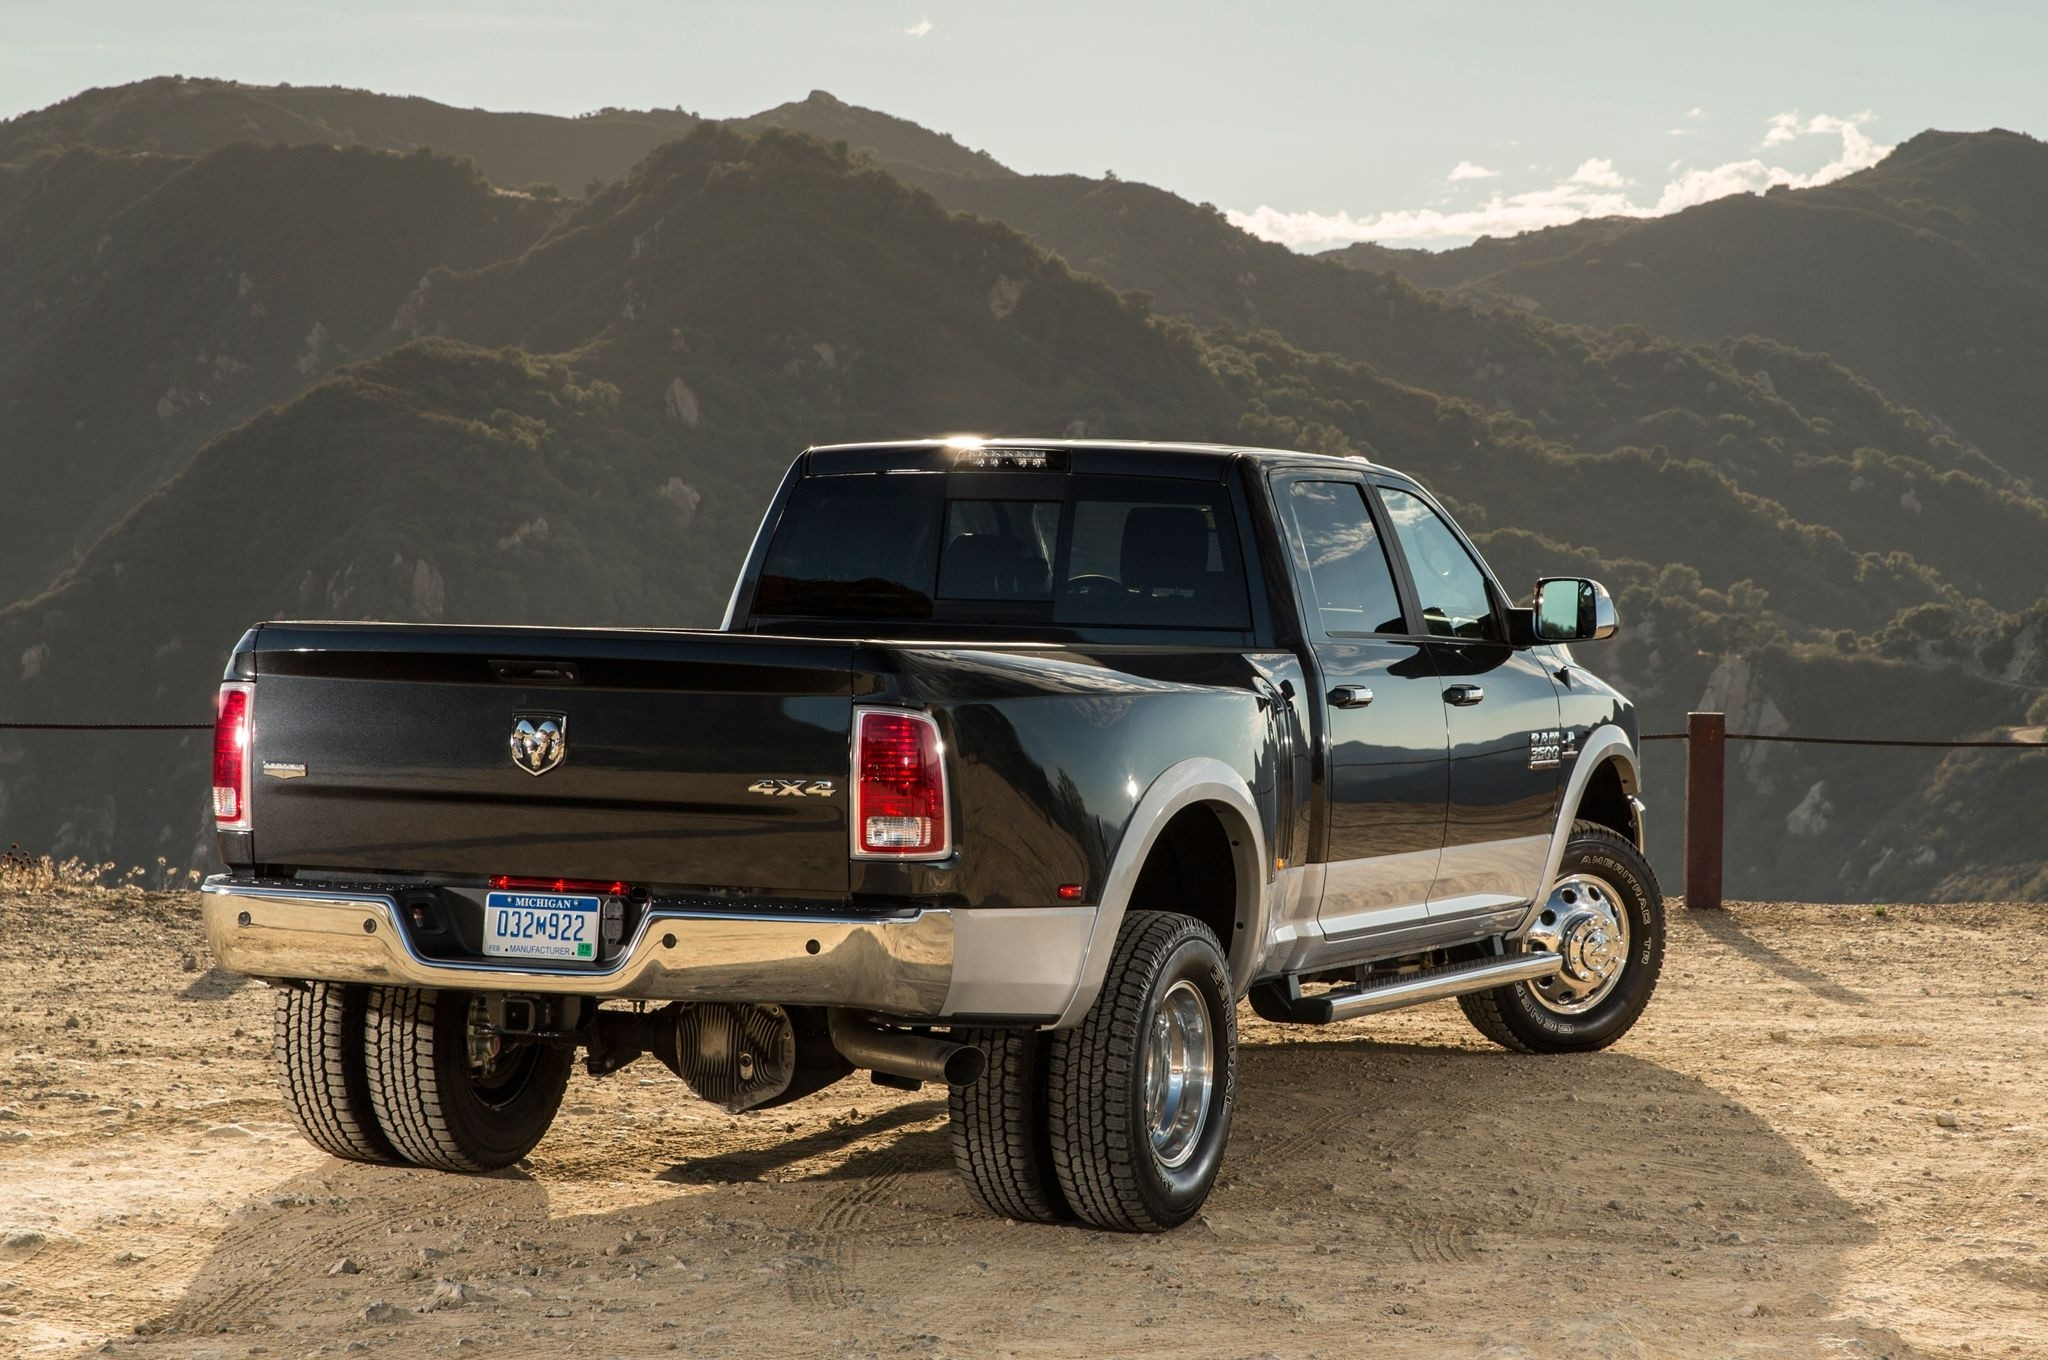 Dually Truck vs  Non-Dually Truck - Pros and Cons of Each